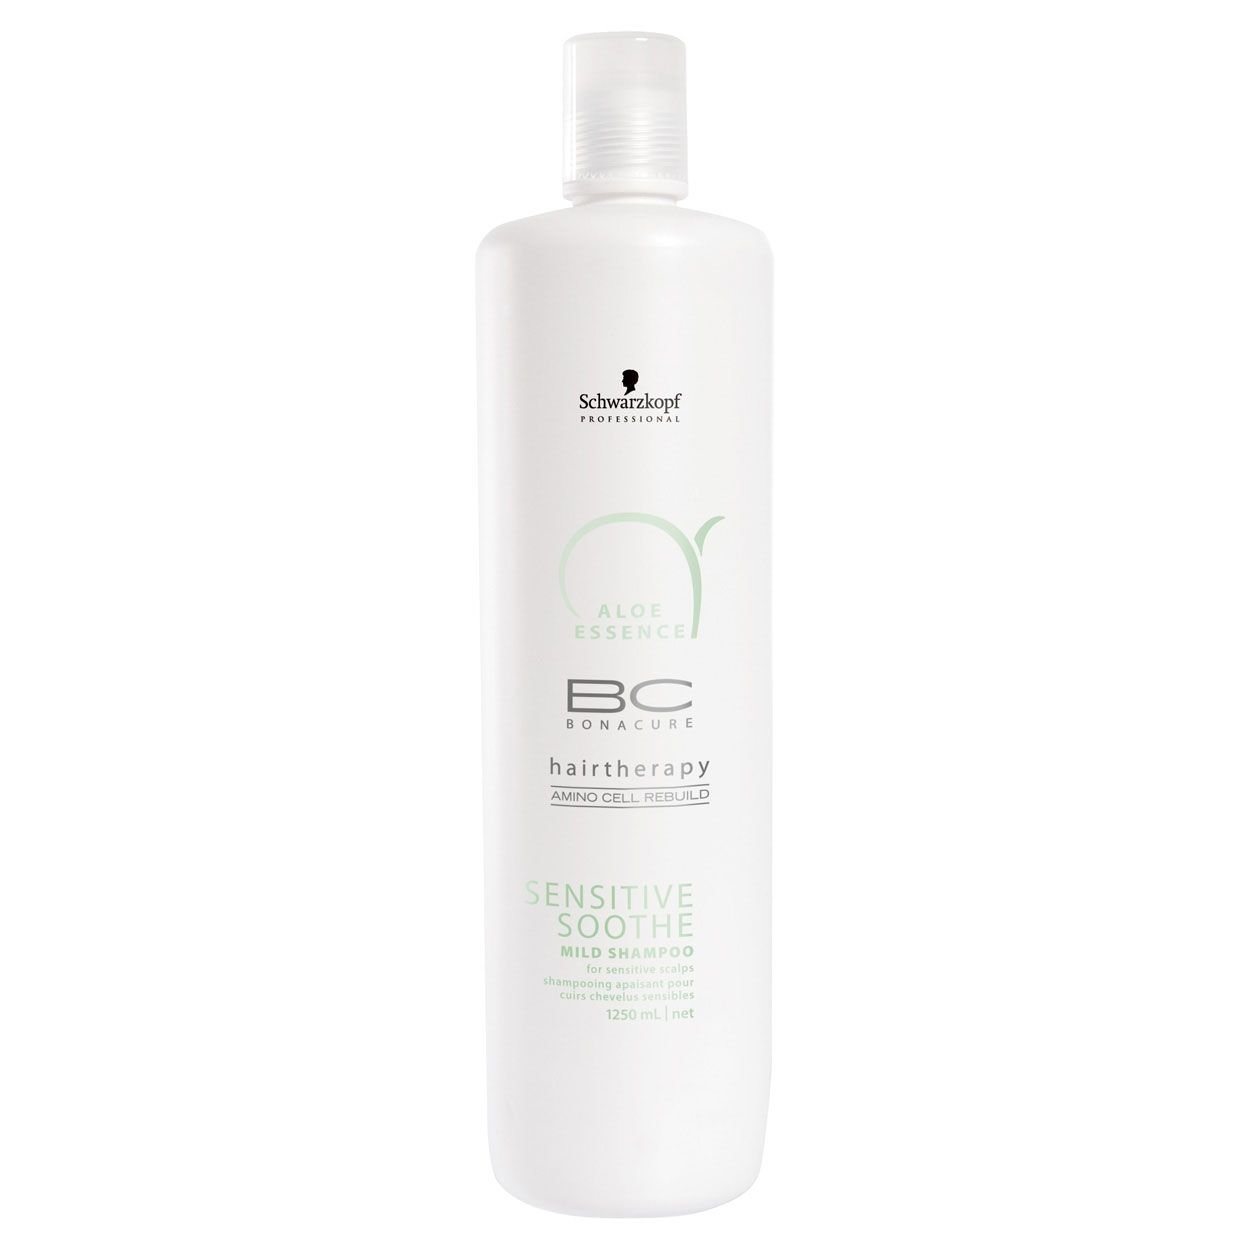 Schwarzkopf Professional BC Bonacure Sensitive Soothe Cosmetic 1250ml